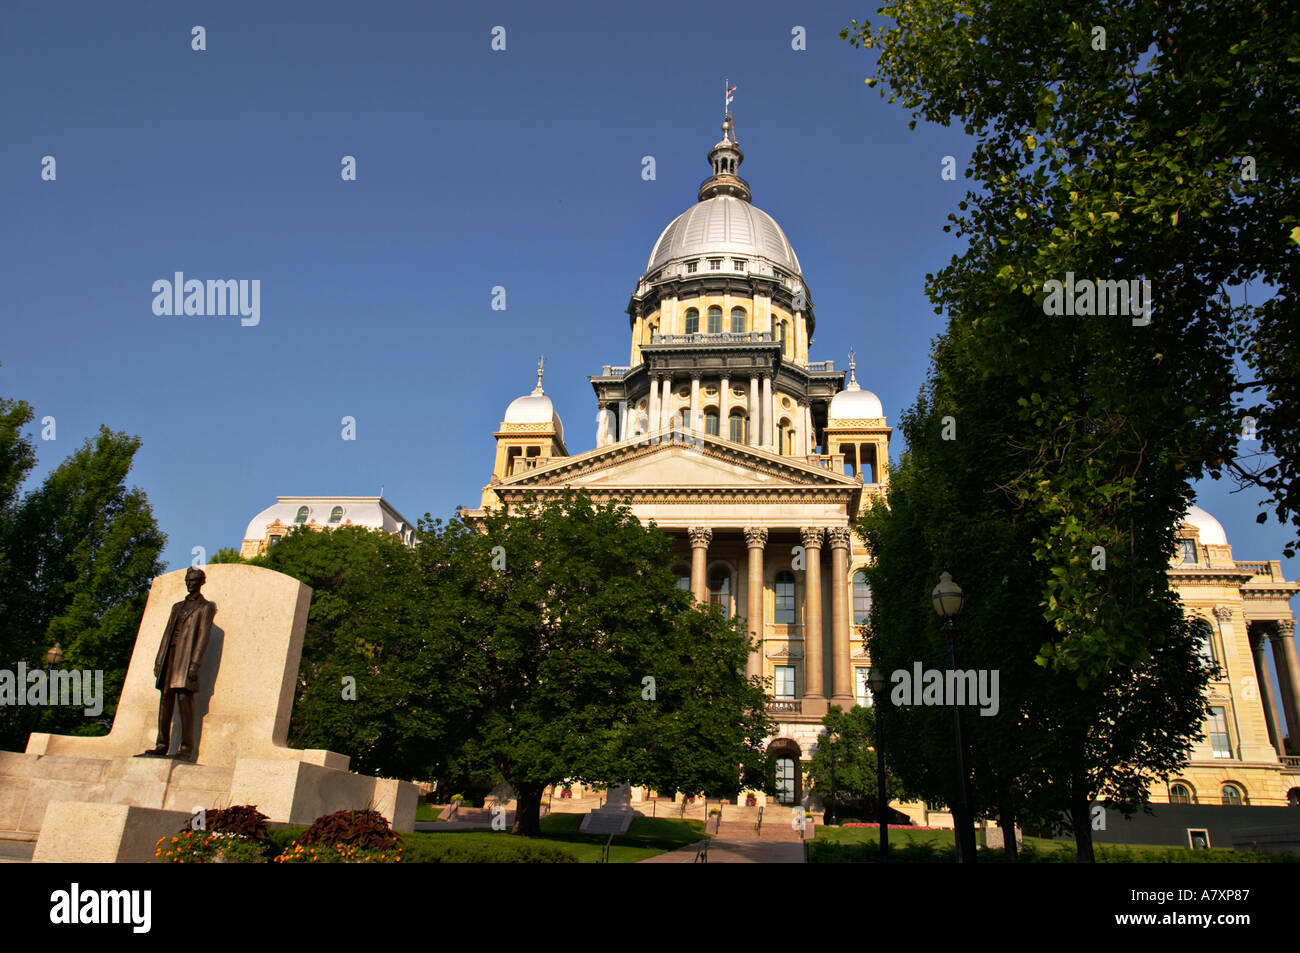 ILLINOIS Springfield State of Abraham Lincoln on grounds of State Capitol building silver dome governmental offices - Stock Image